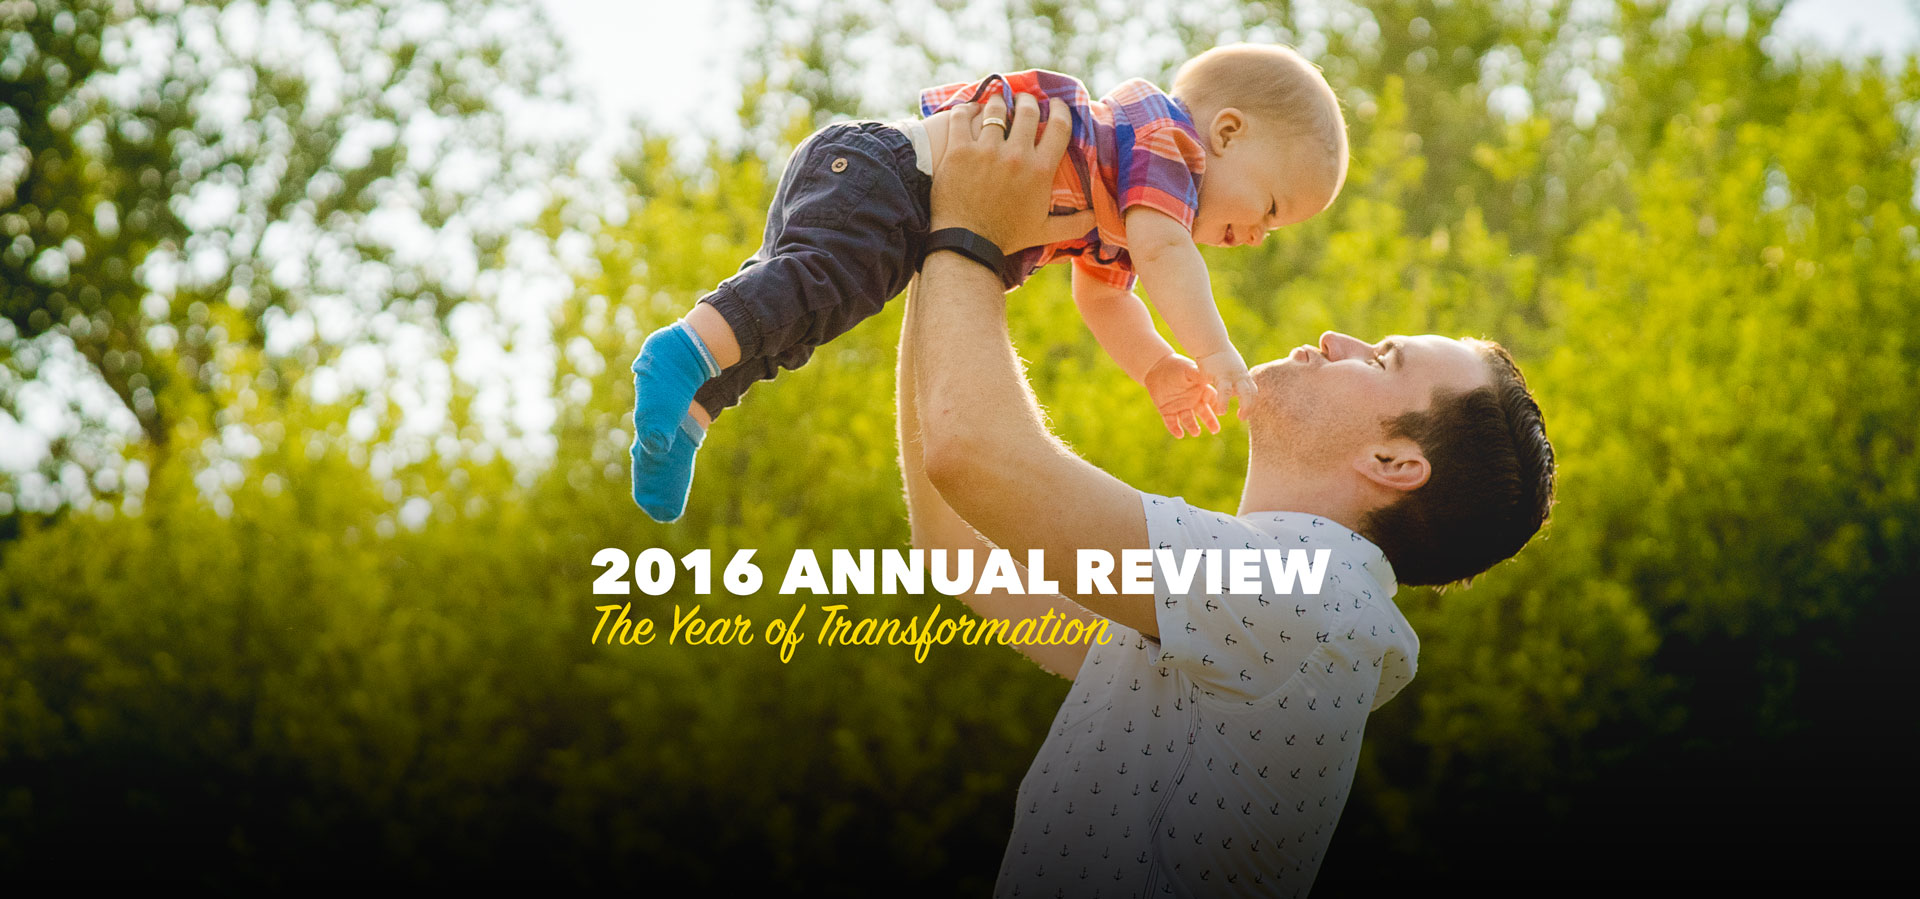 Brad Hussey 2016 Annual Review